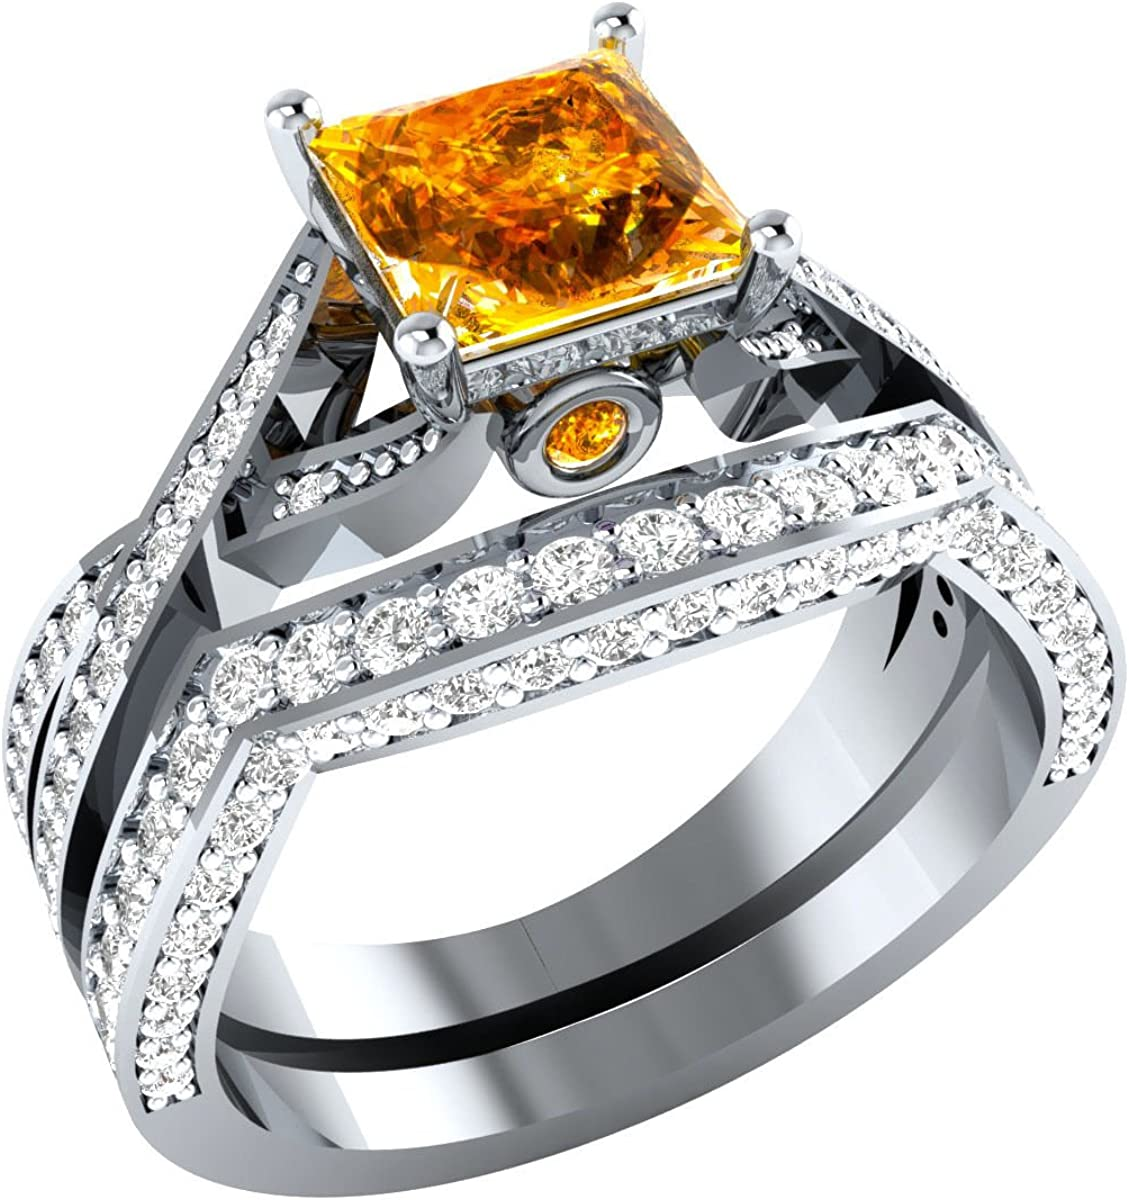 Gold Free shipping anywhere in the nation Diamonds Jewellery 1.65 ct Citrin Princess Created Oakland Mall Orange